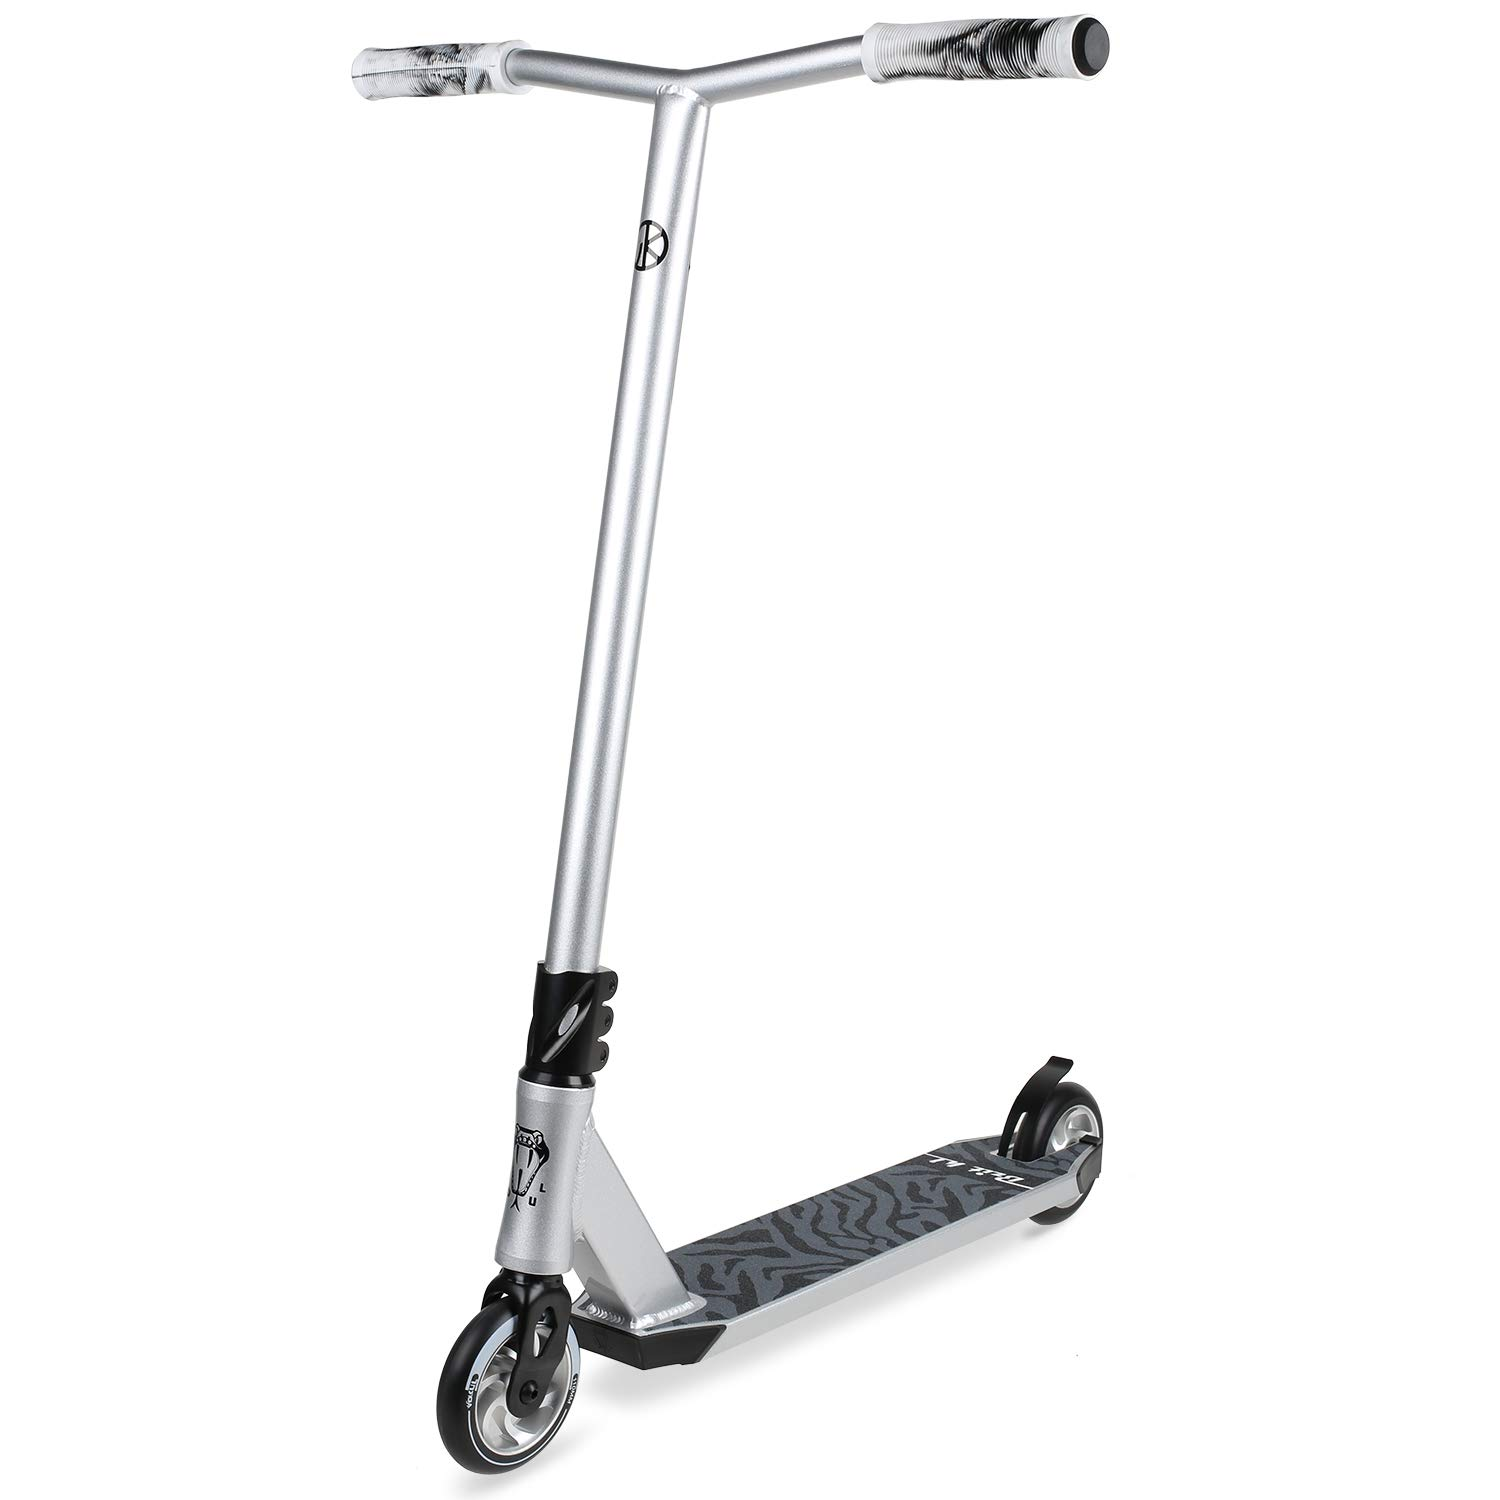 VOKUL Complete Pro Scooter for Kids Boys Girls Teens Adults Up 7 Years - Freestyle Tricks Pro Stunt Scooter with 110mm Metal Wheels - High Performance Gift for Skatepark Street Tricks